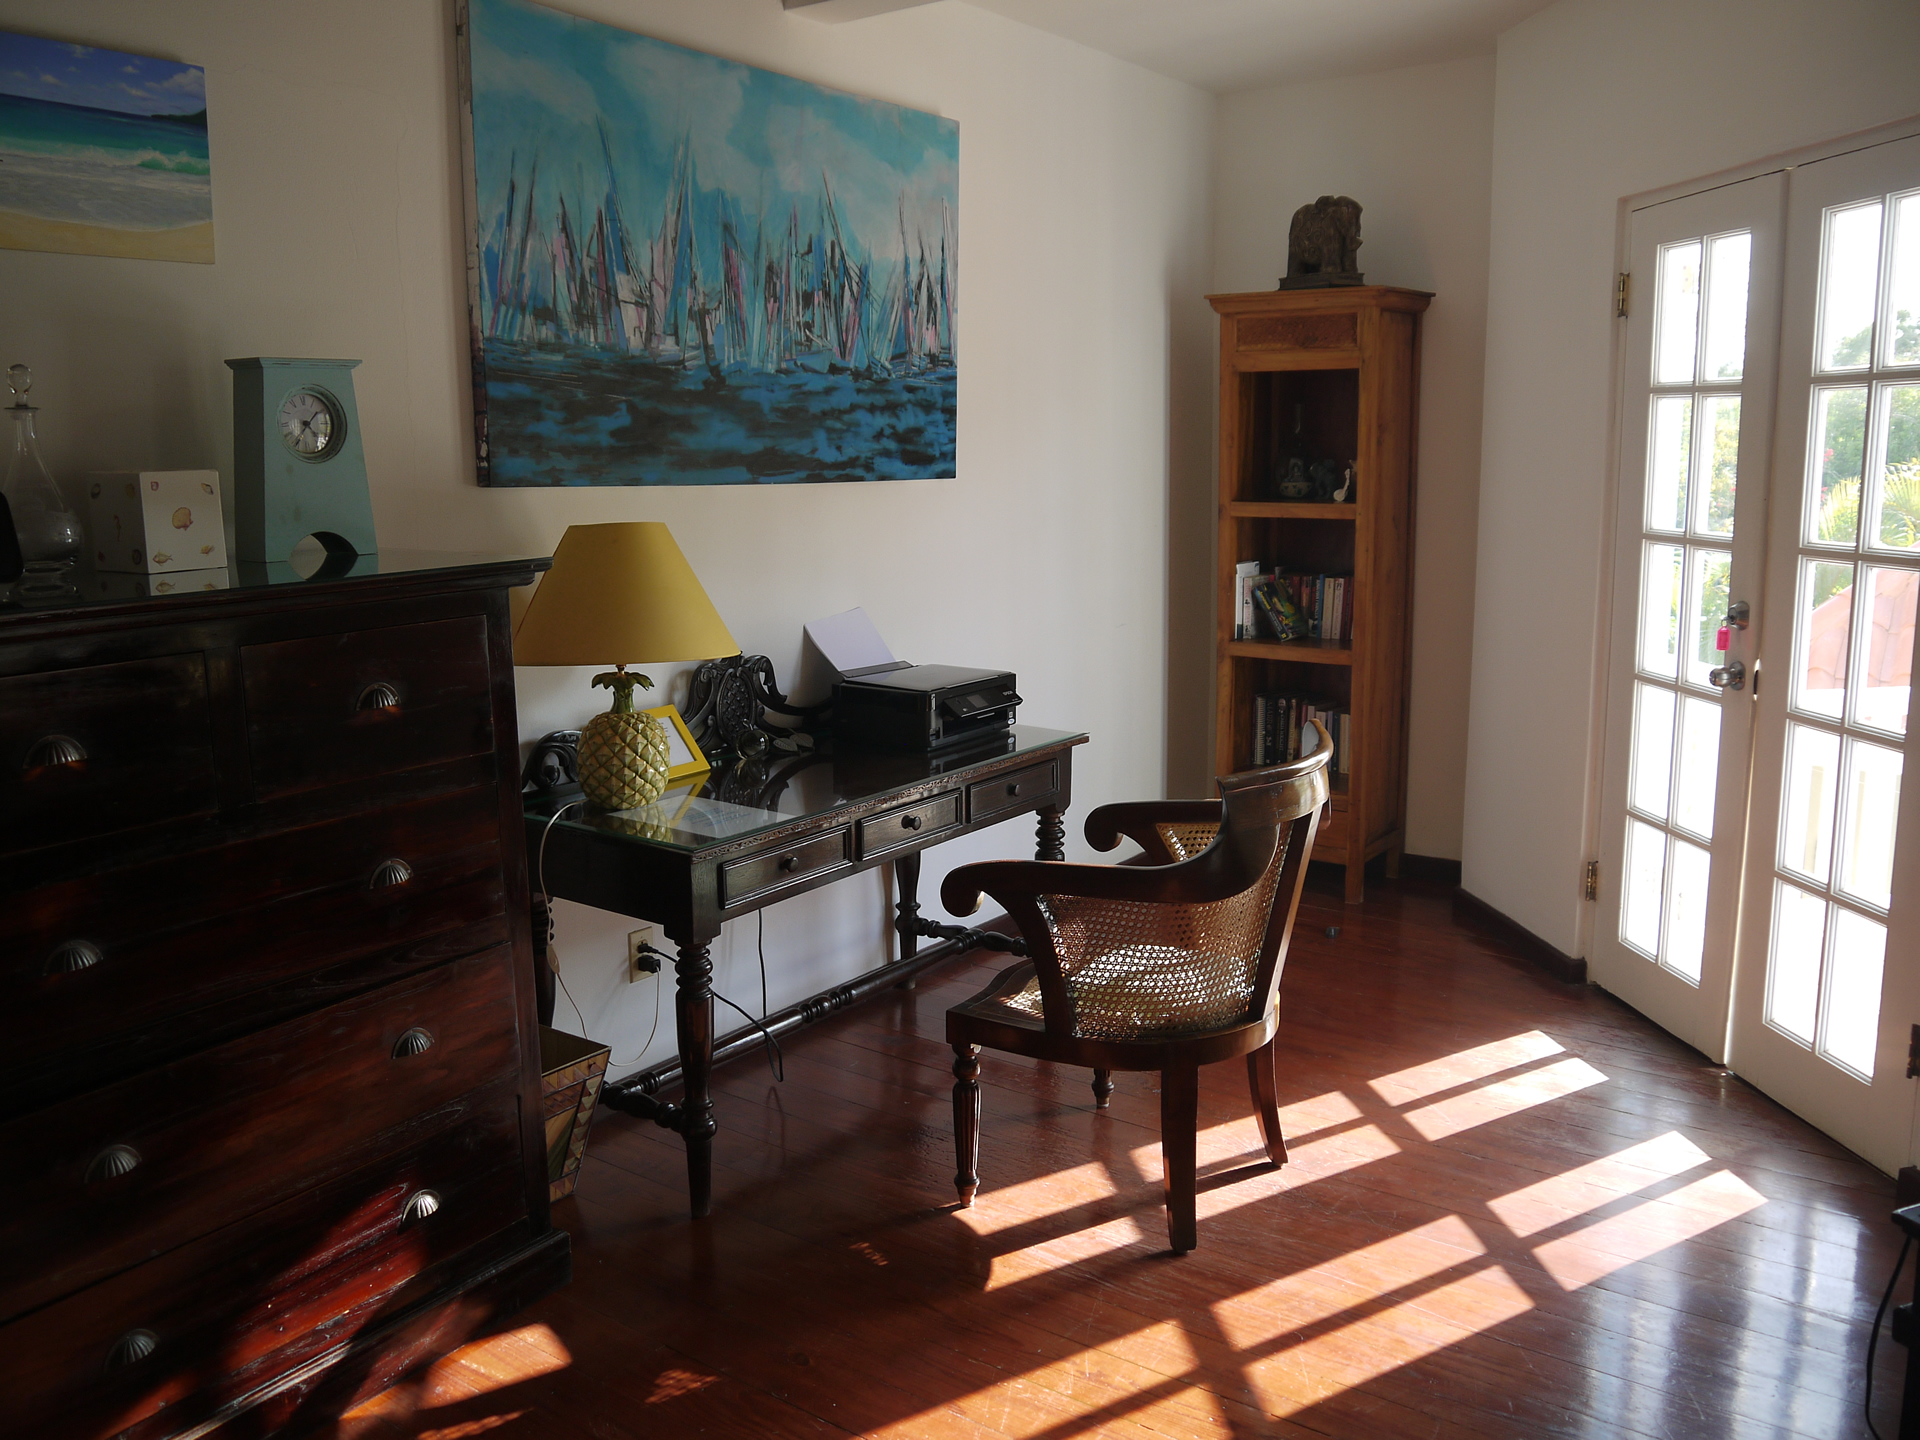 Wooden floors and tastefully furnished with antiques